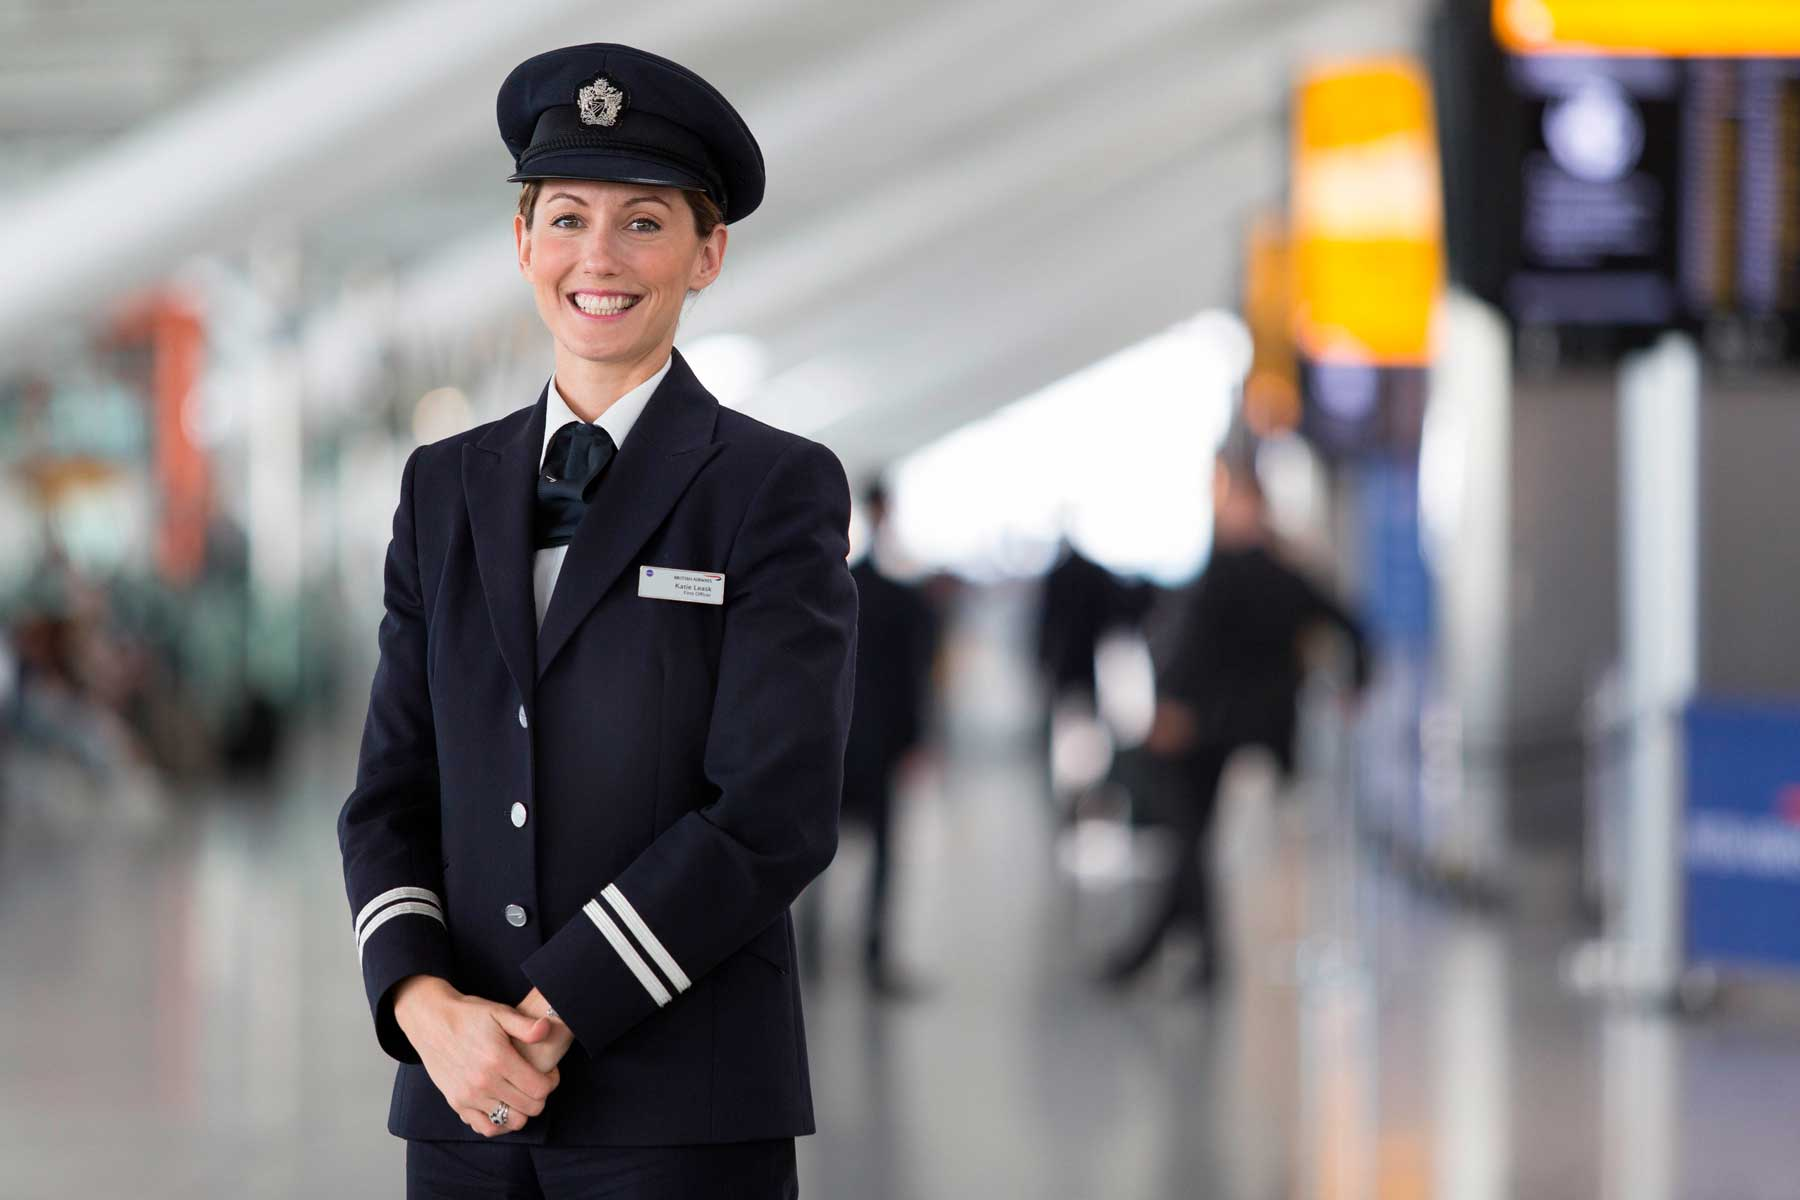 British Airways First Officer, Katie Leask